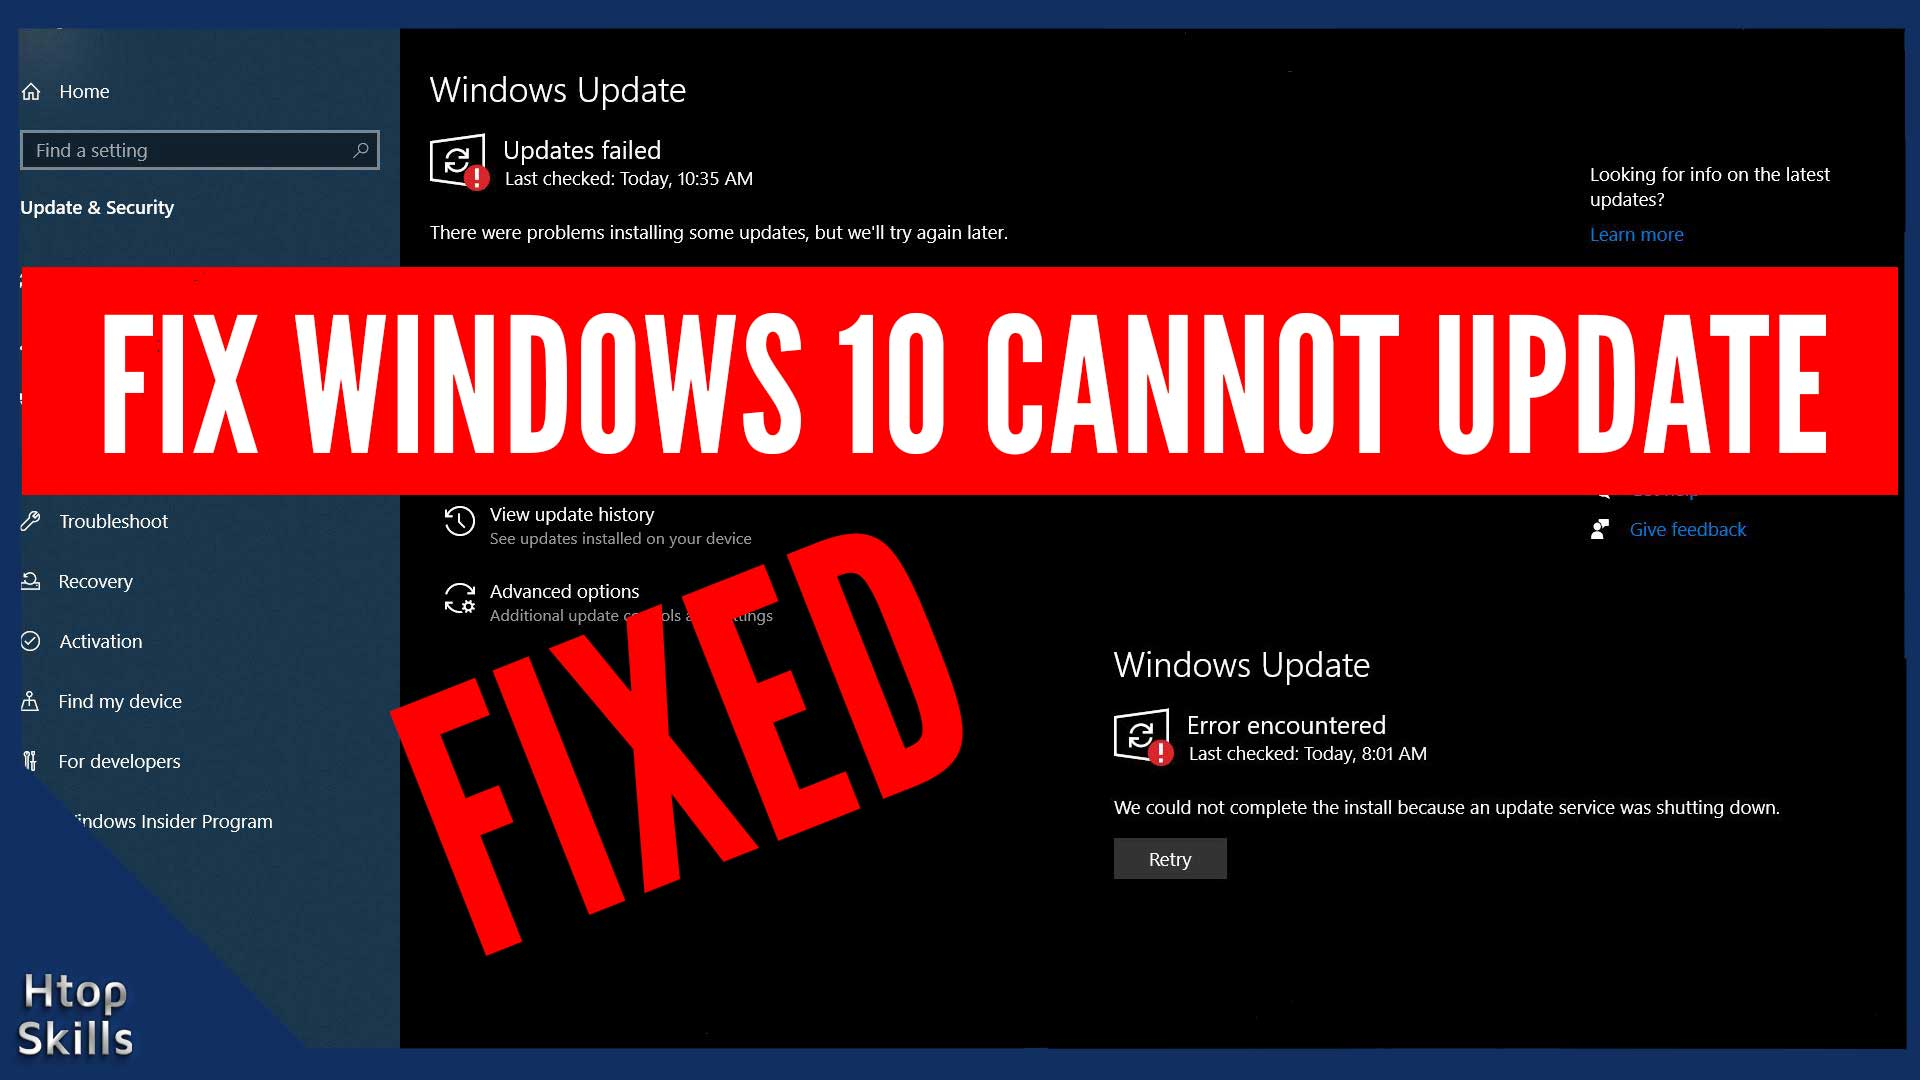 How to fix Windows 10 Cannot Update